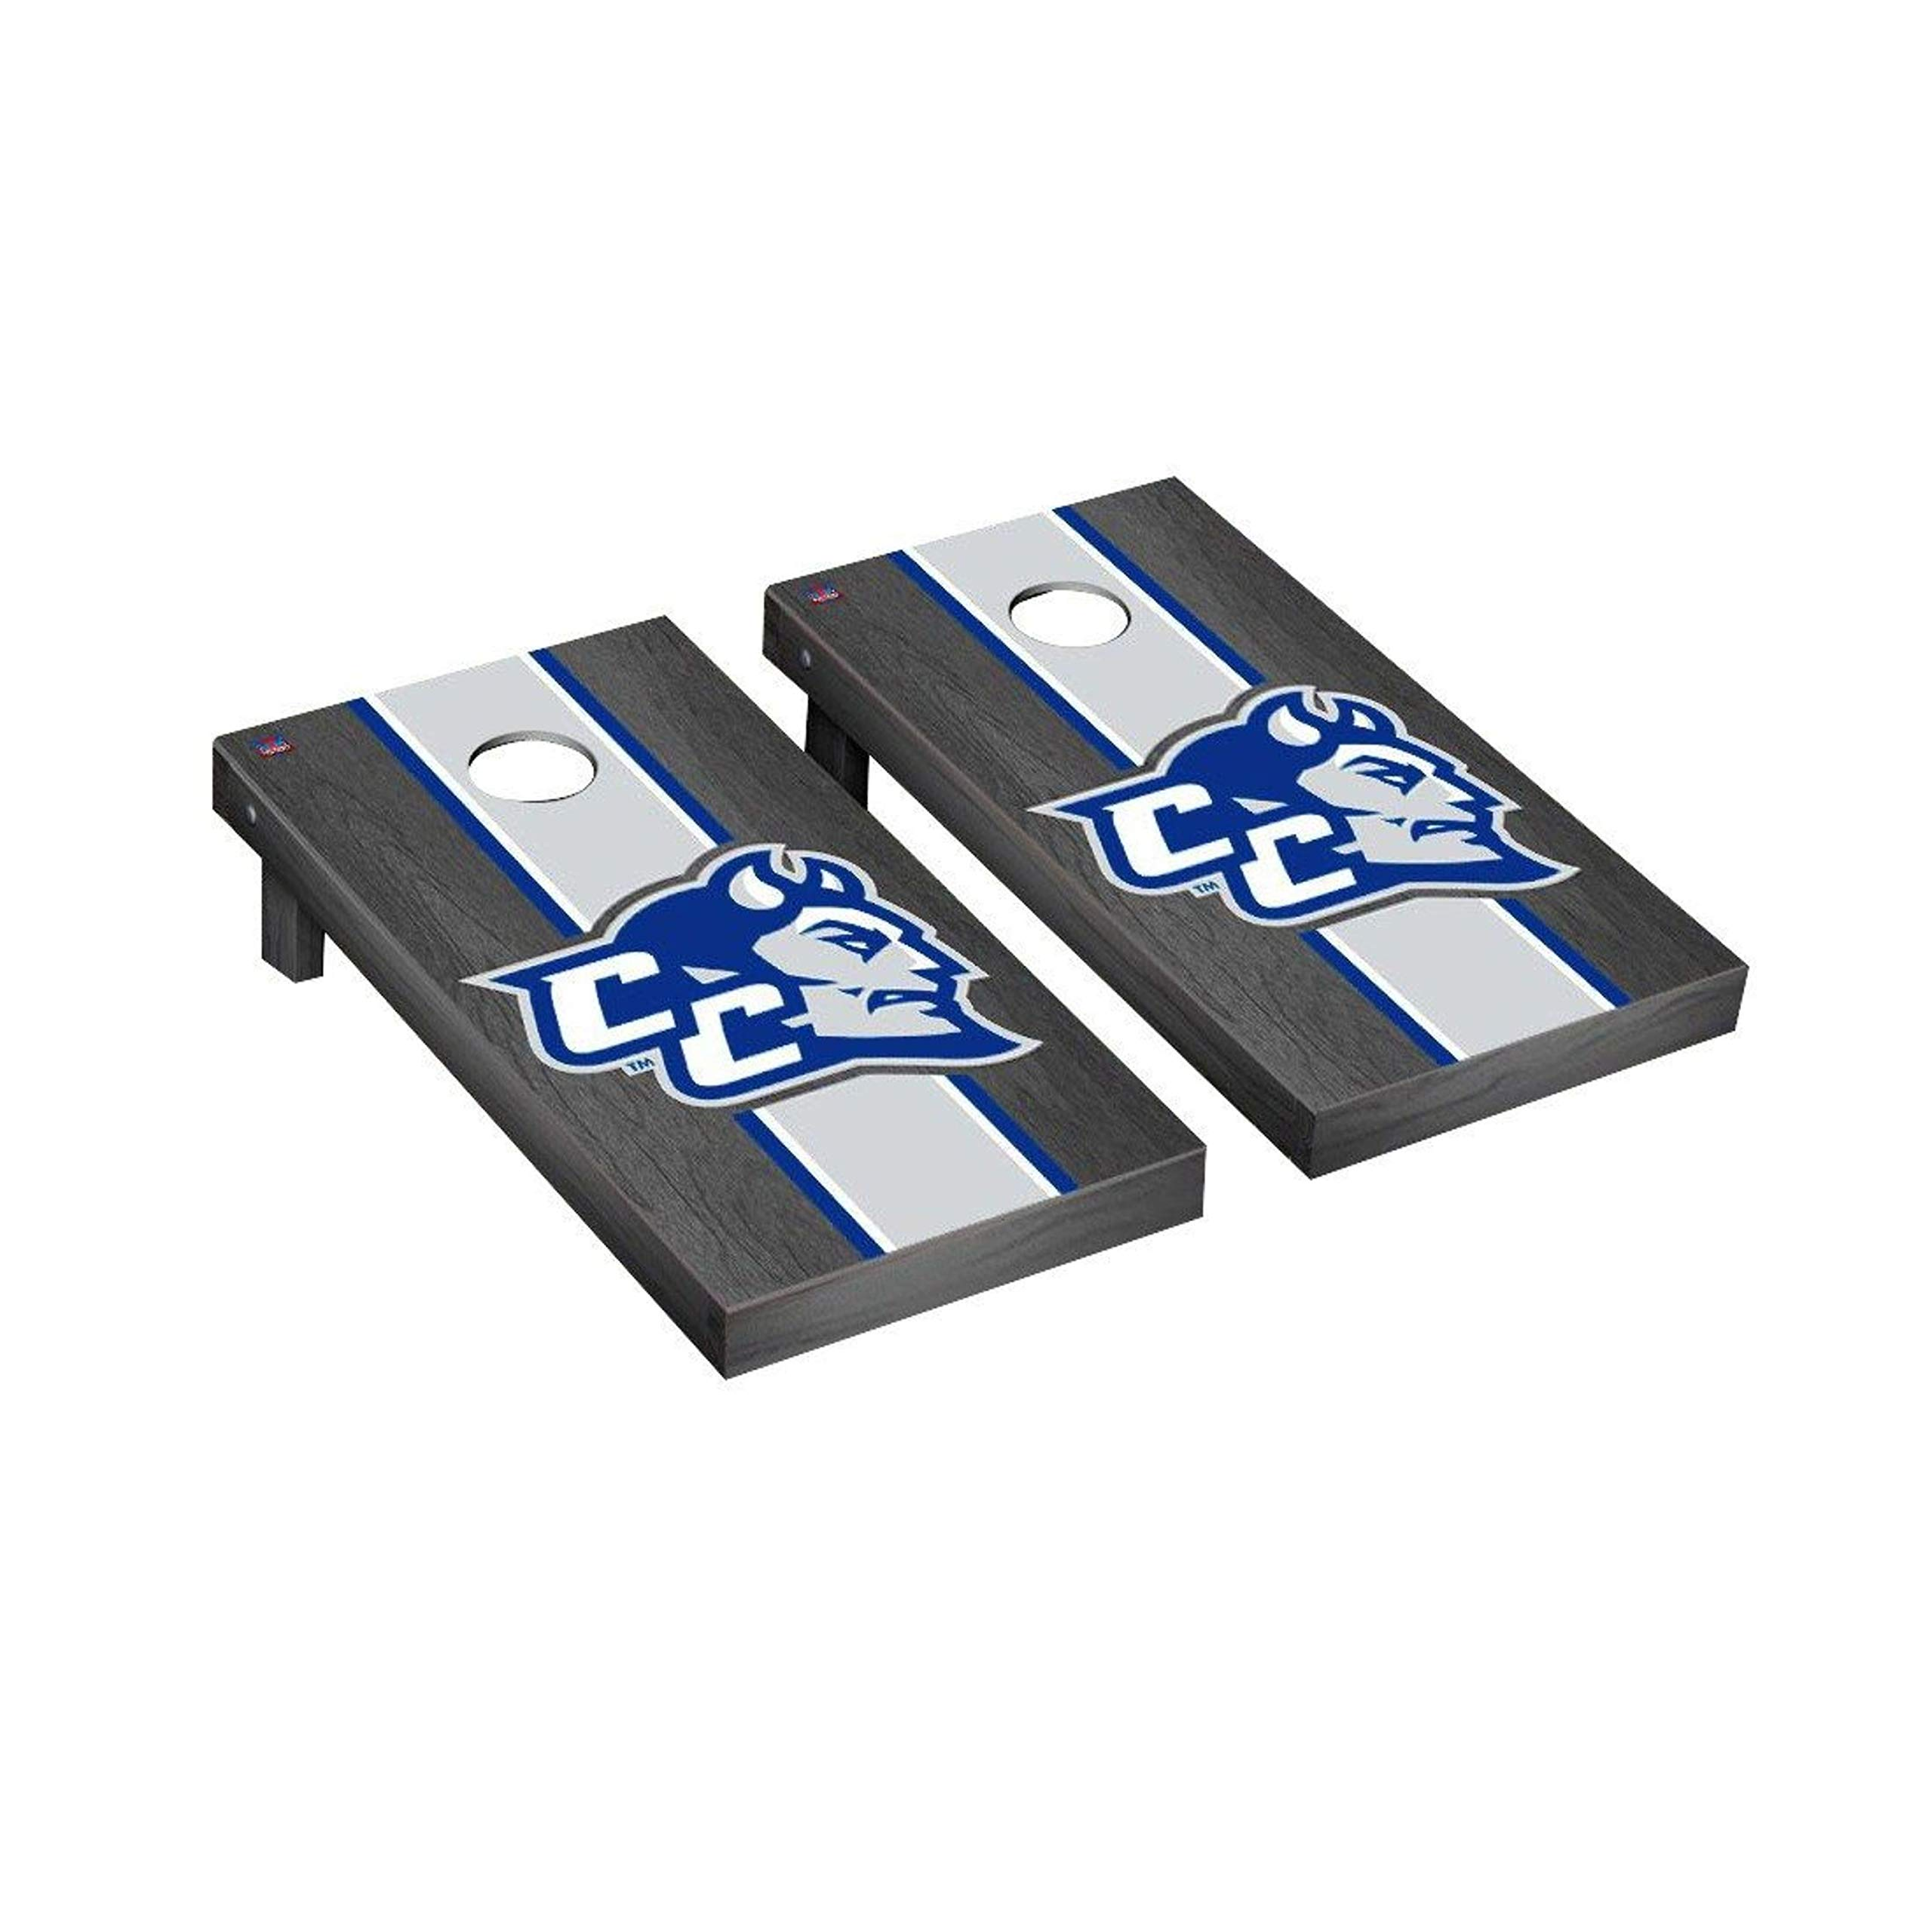 Victory Tailgate Regulation Collegiate NCAA Onyx Stained Stripe Series Cornhole Board Set - 2 Boards, 8 Bags - Central Connecticut State Blue Devils by Victory Tailgate